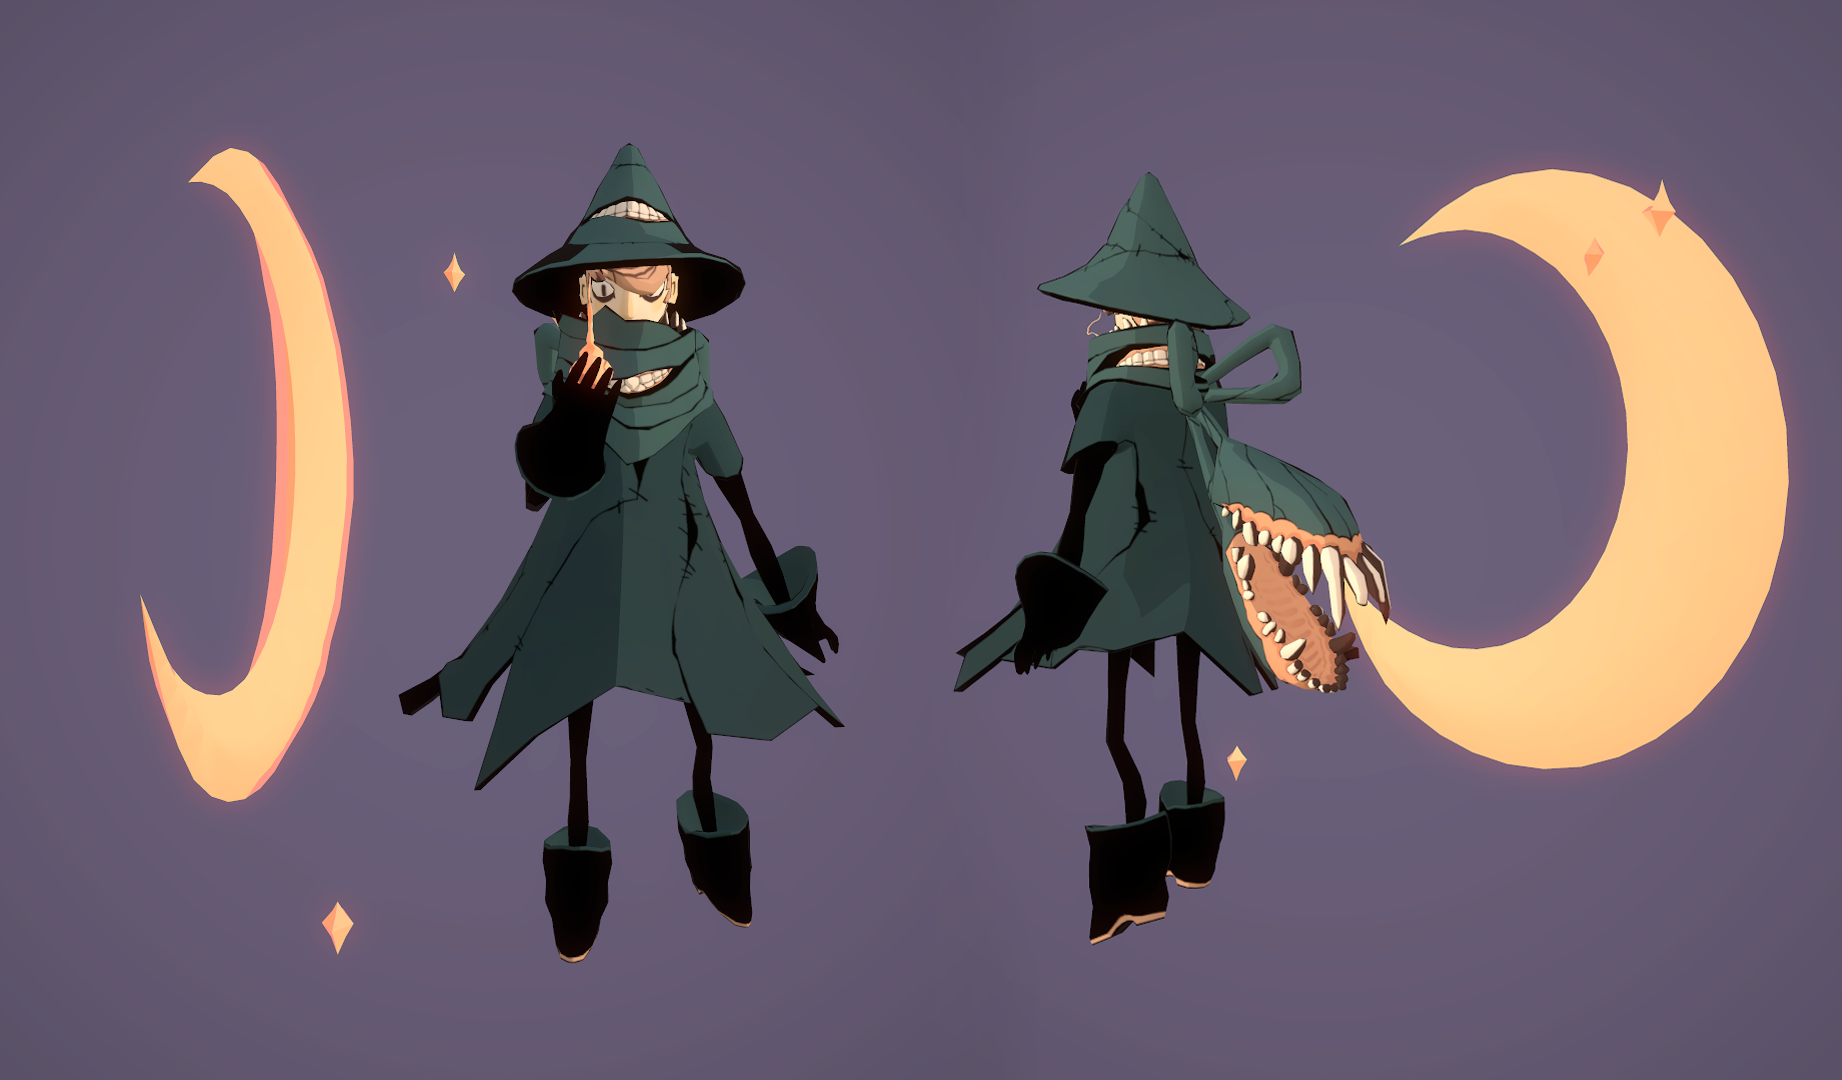 ToothWitch_02